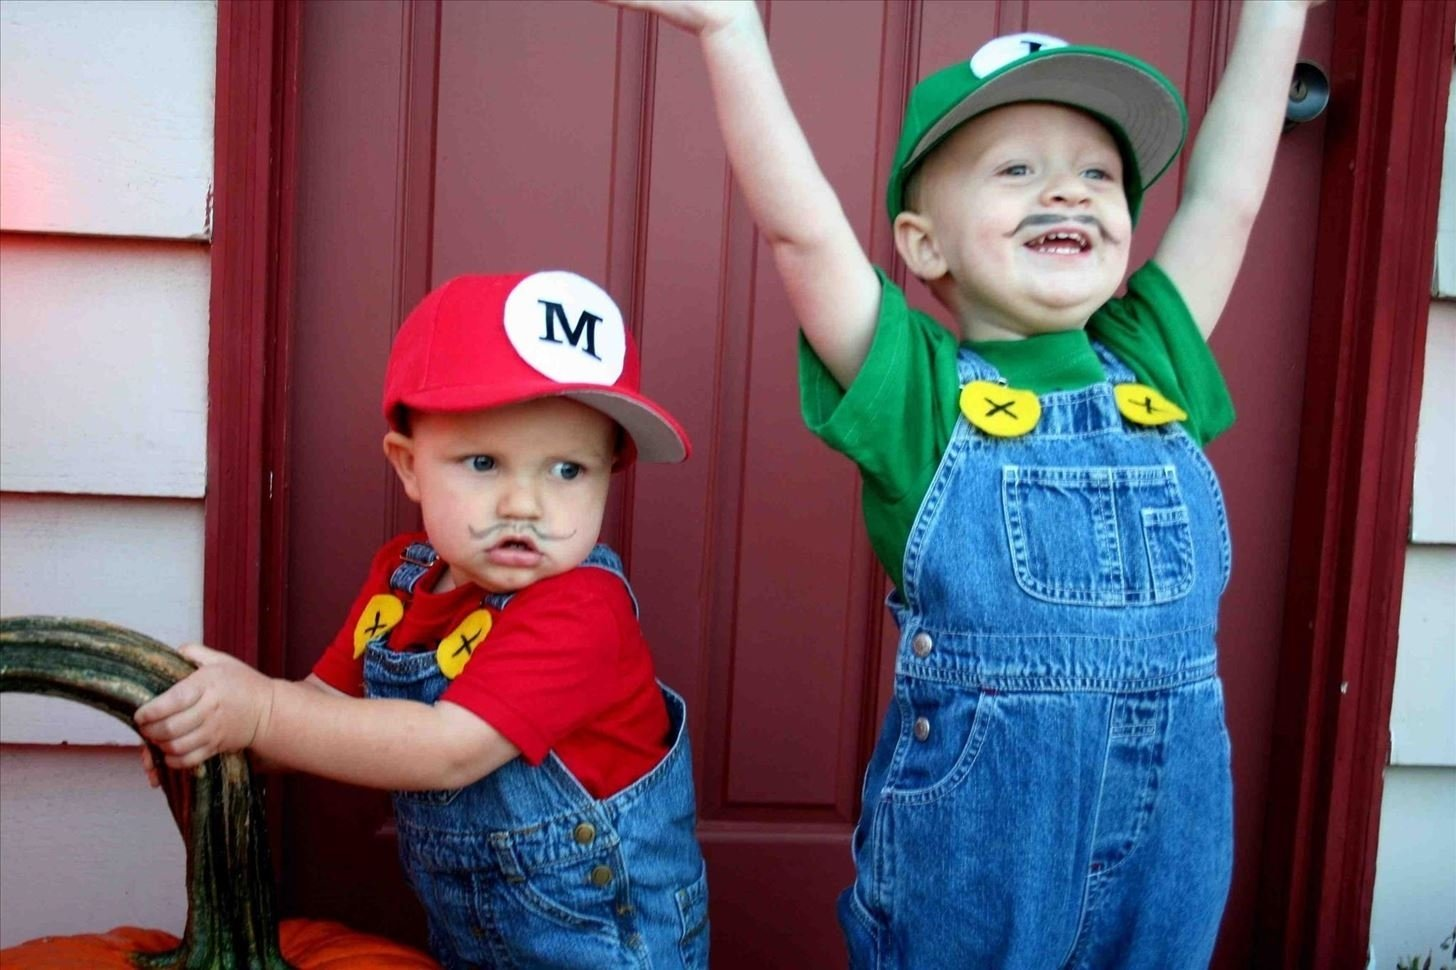 10 Fashionable Halloween Costume Ideas For Kids 10 cheap easy awesome diy halloween costumes for kids homemade 10 2020